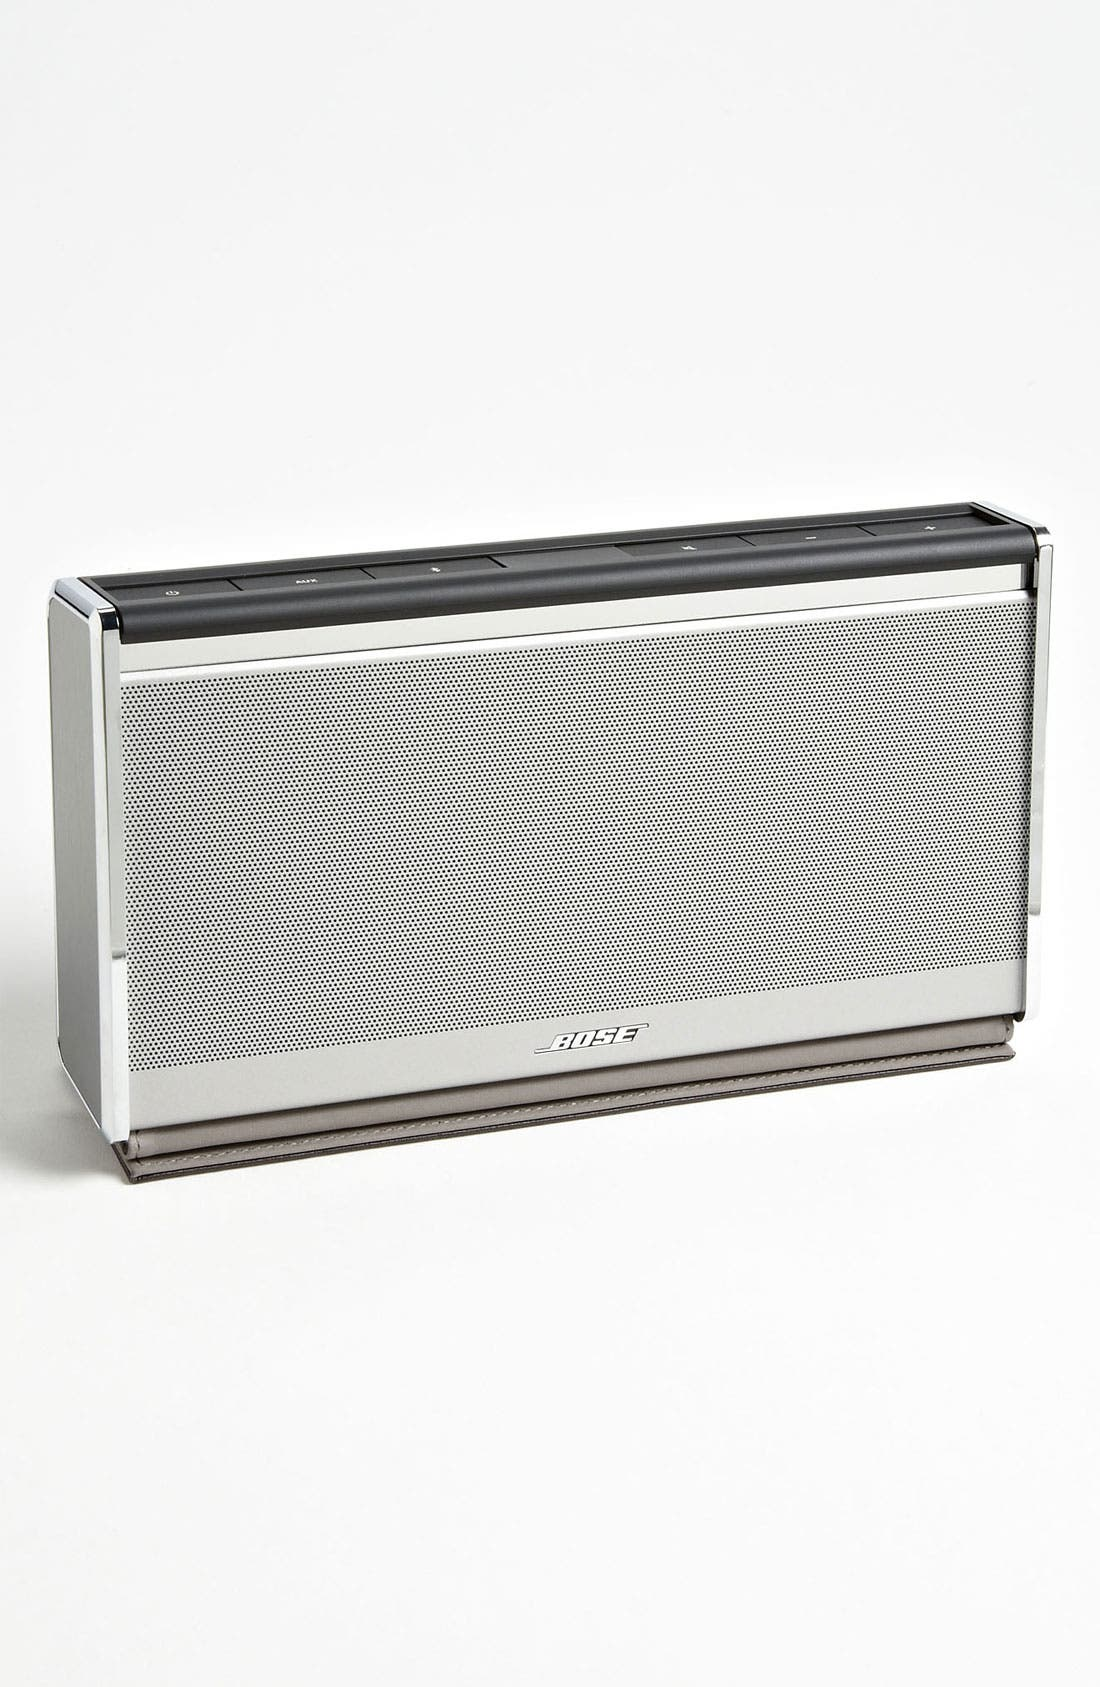 Main Image - Bose® SoundLink® Bluetooth® Mobile Speaker II – Leather Edition